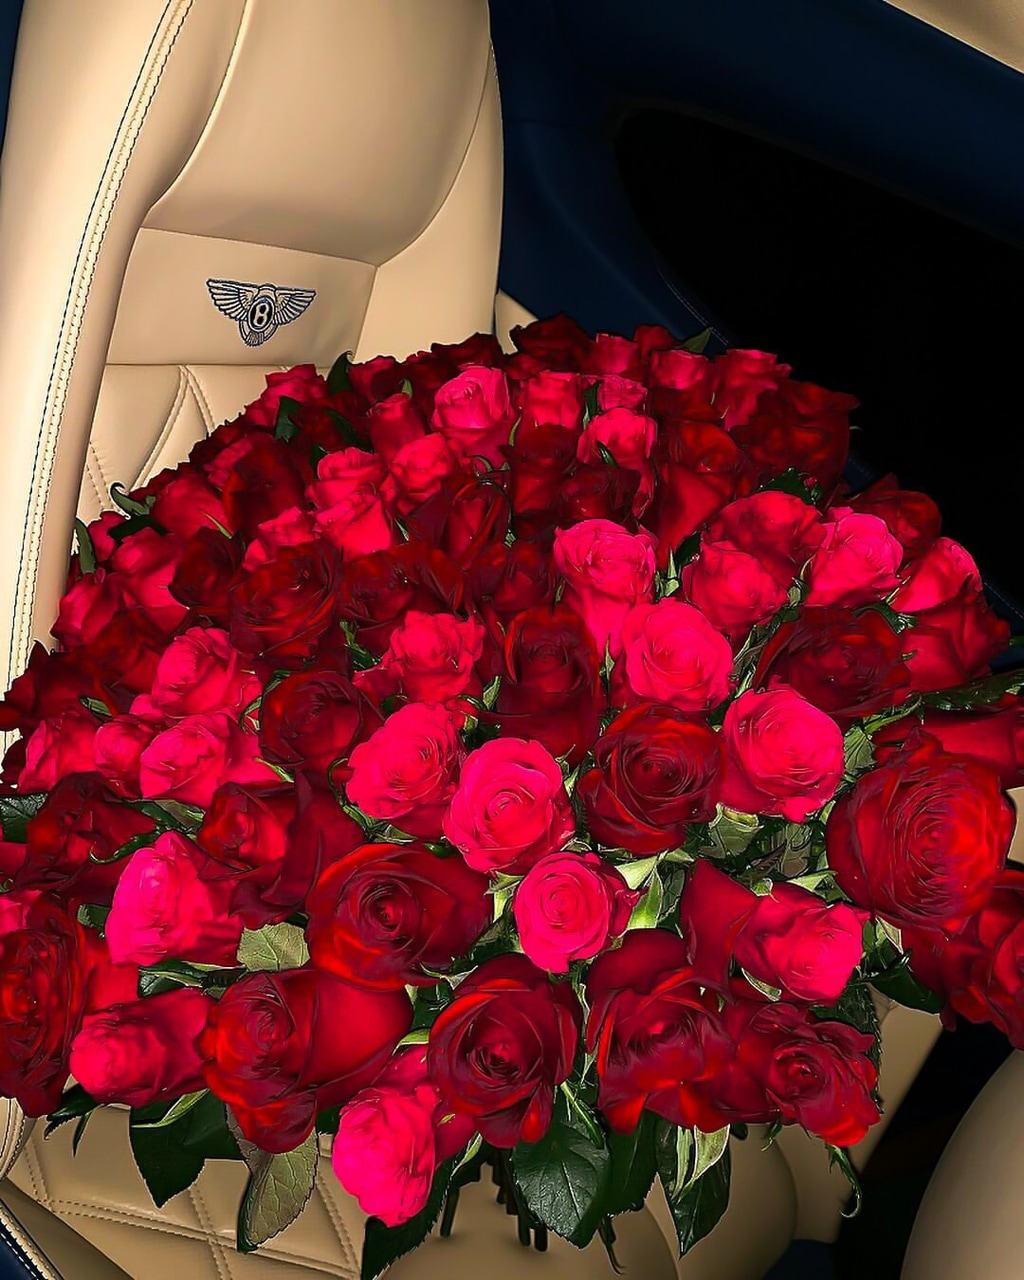 bentley, roses, luxury and car